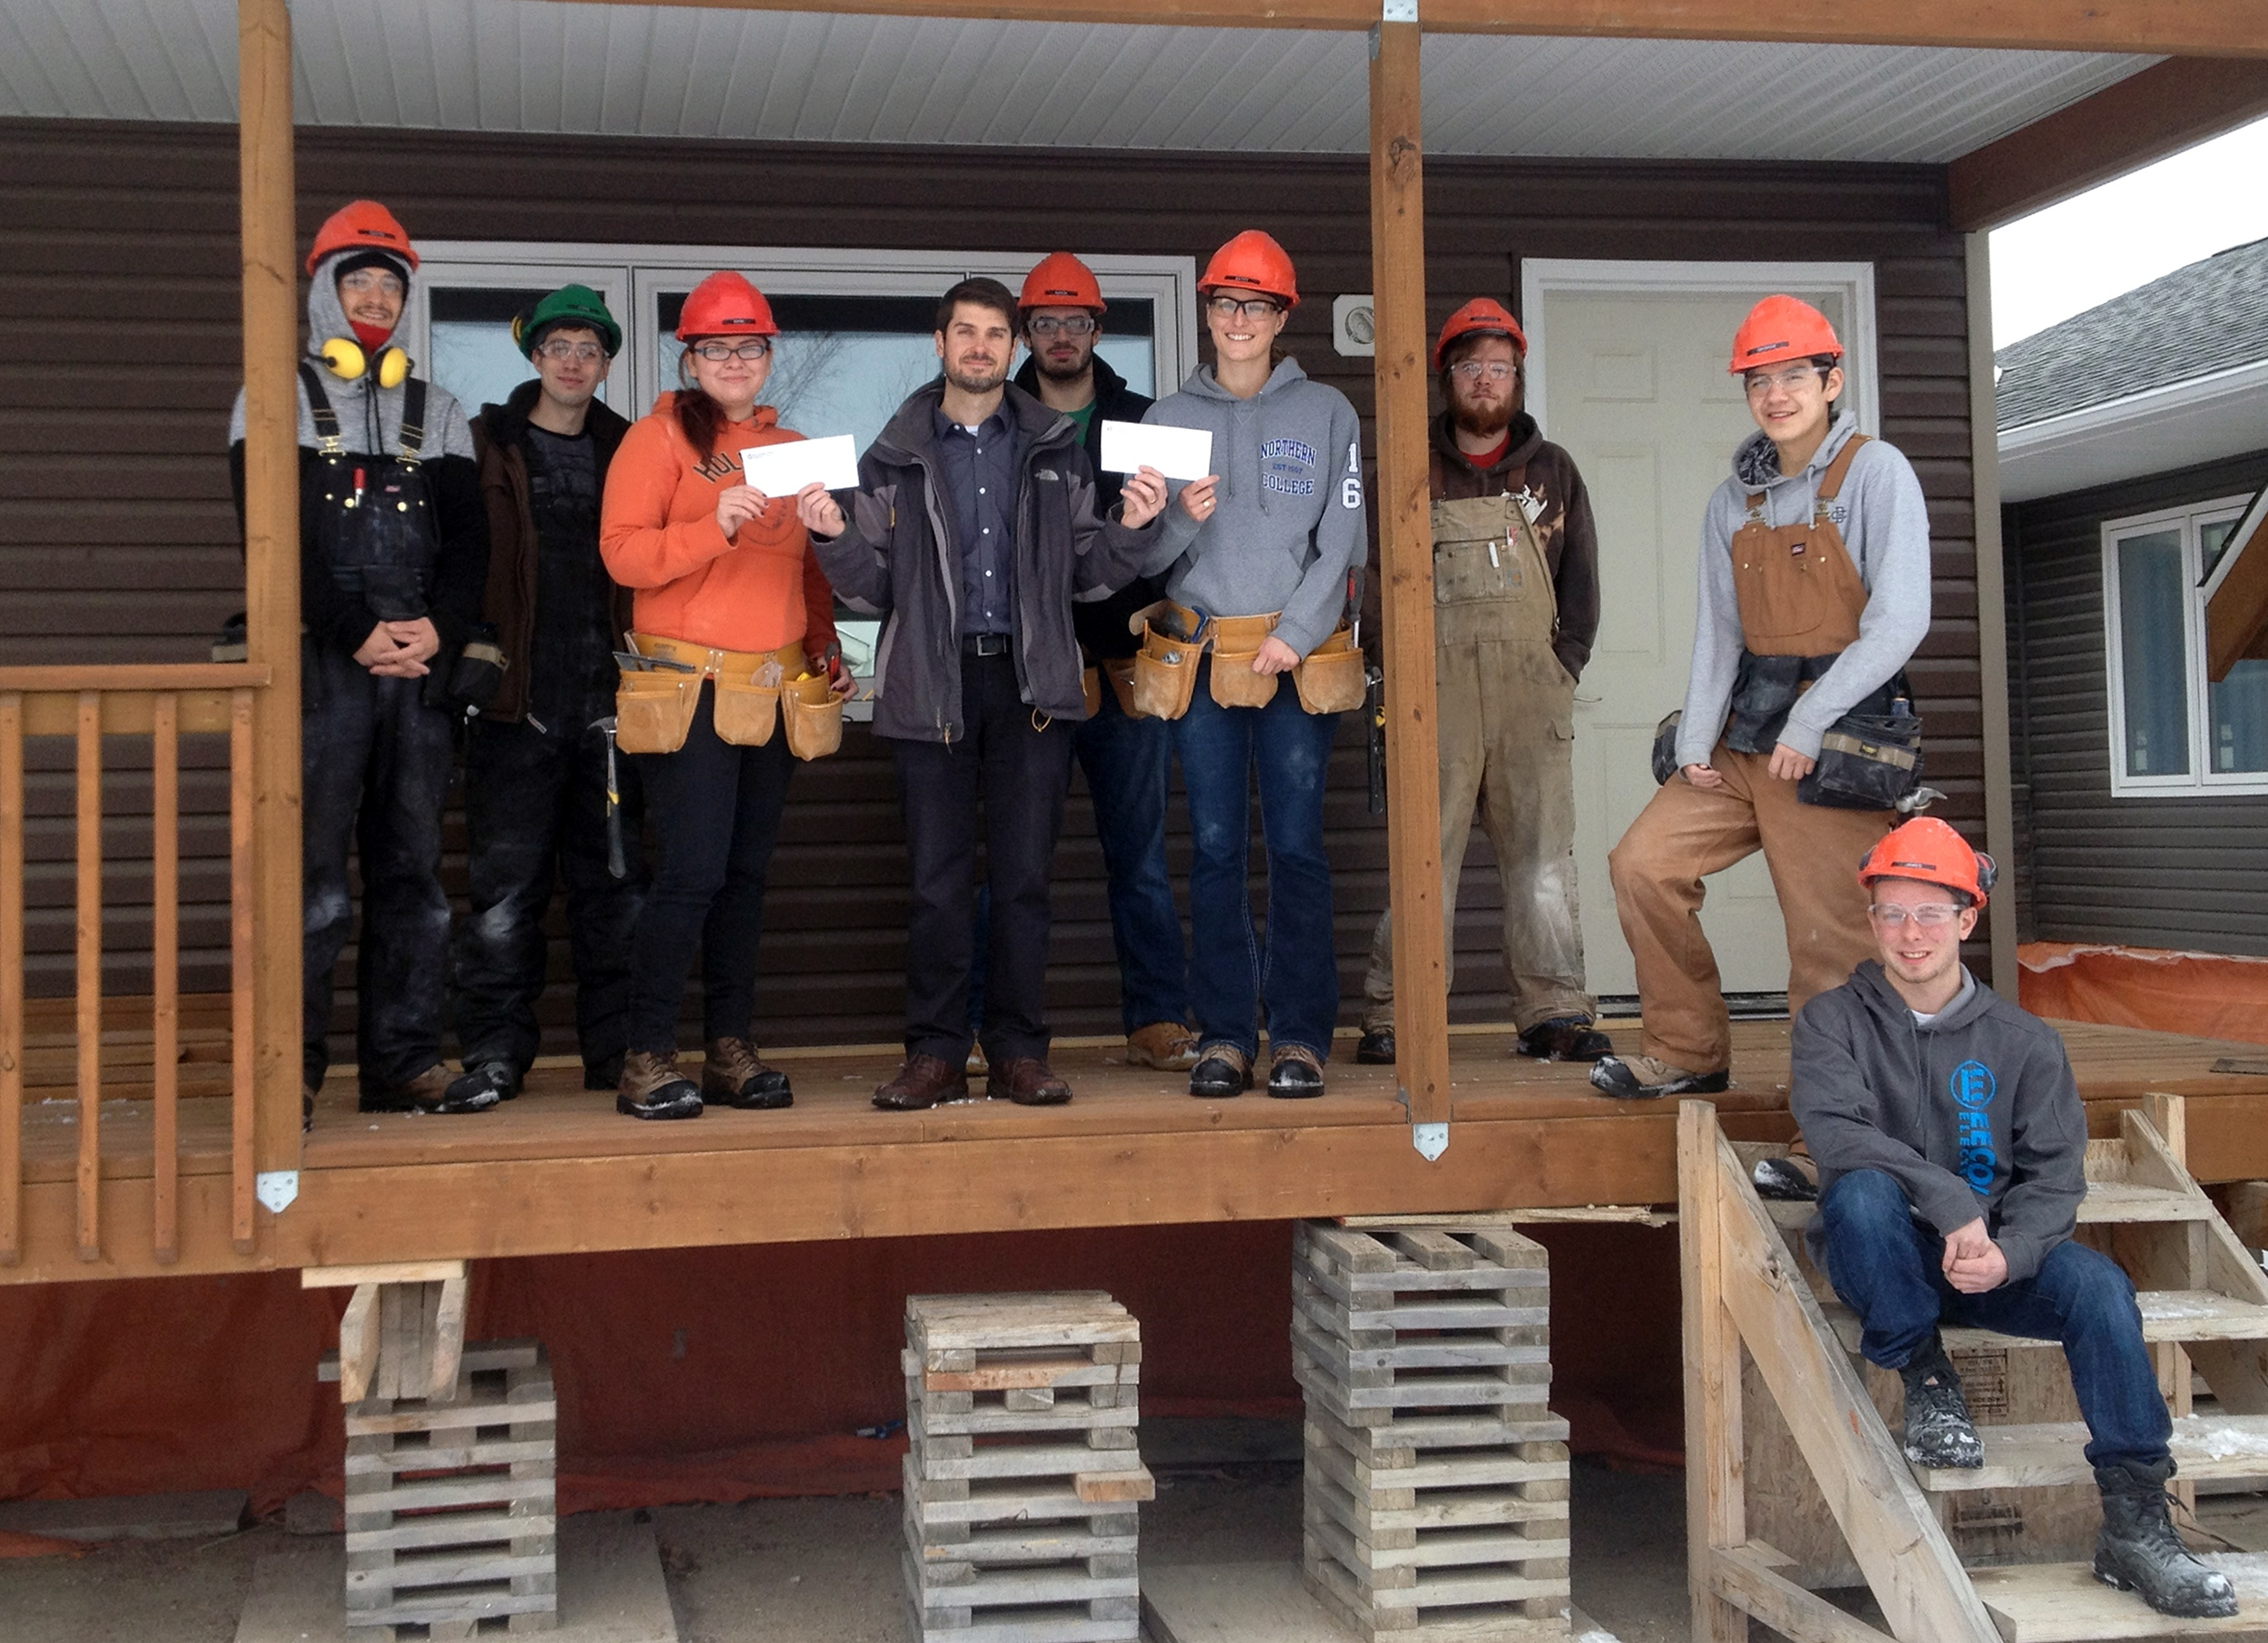 Photo (of Dauphin Co-op building division manager Steve Bunka presenting Nikki Welburn (left) and Kathy Gale (right) with awards, with the rest of the carpentry students outside the home they're building) provided by ACC